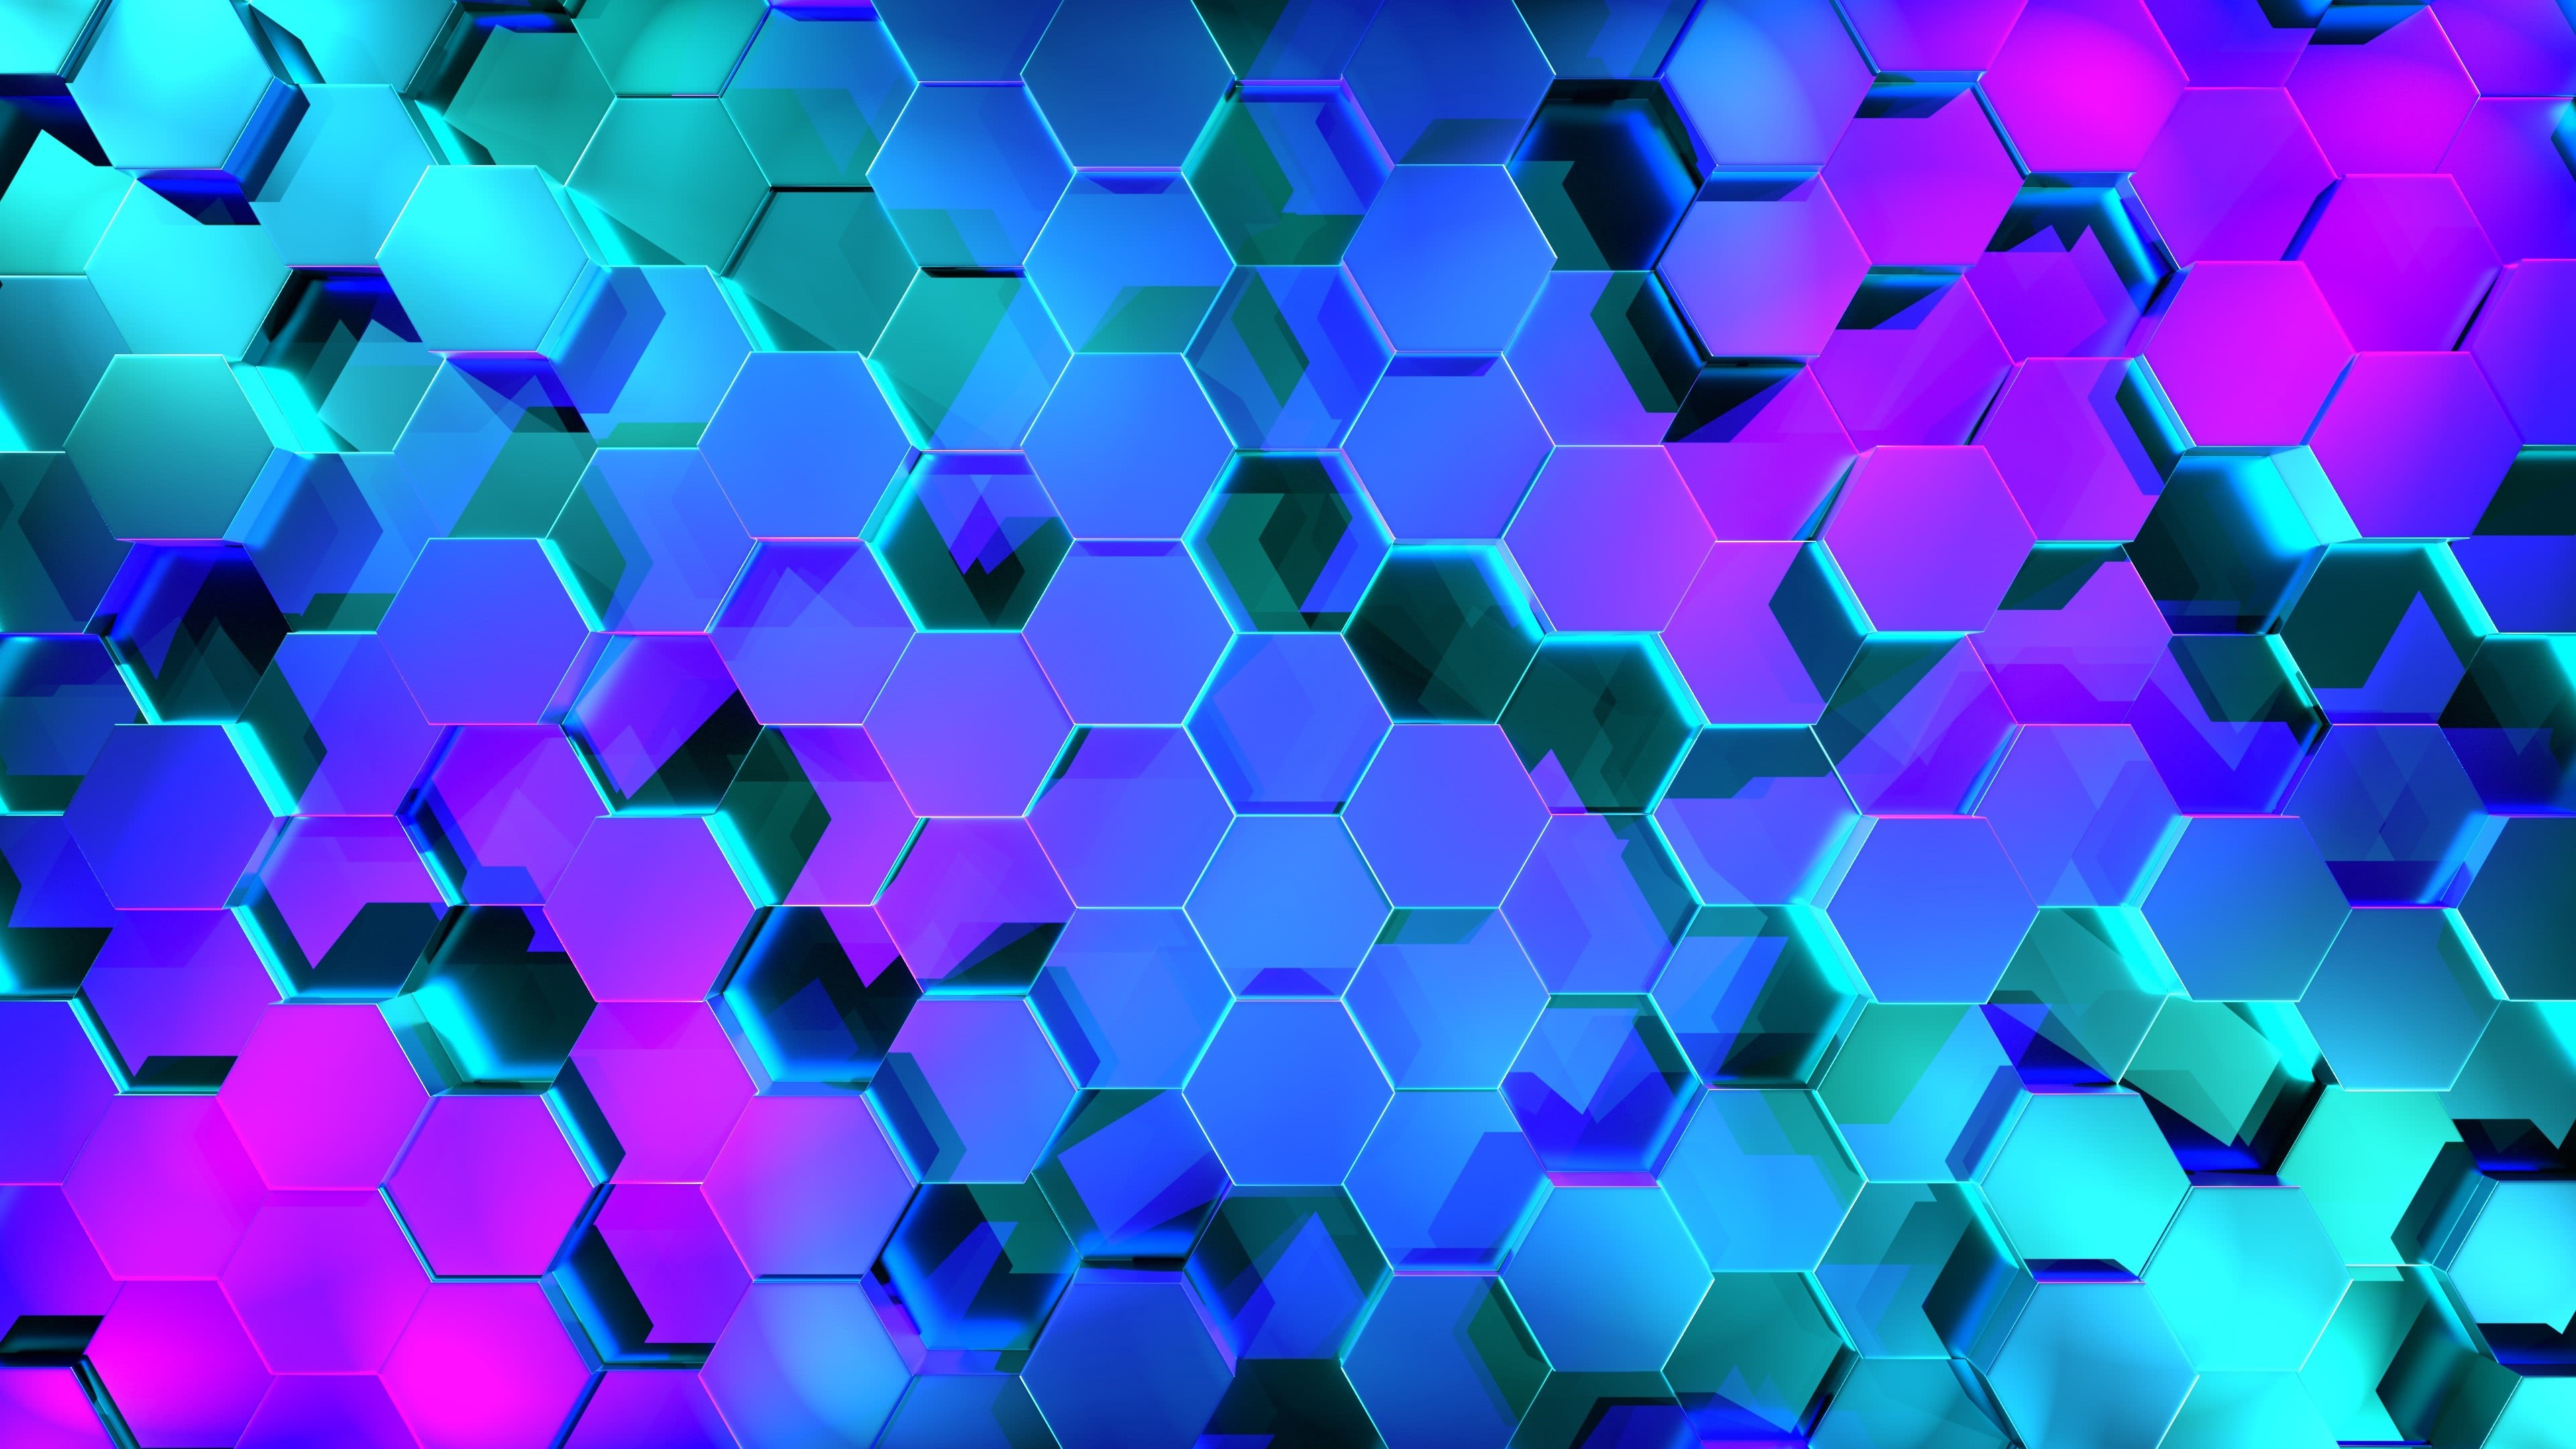 hexagon pattern blue and purple uhd 4k wallpaper